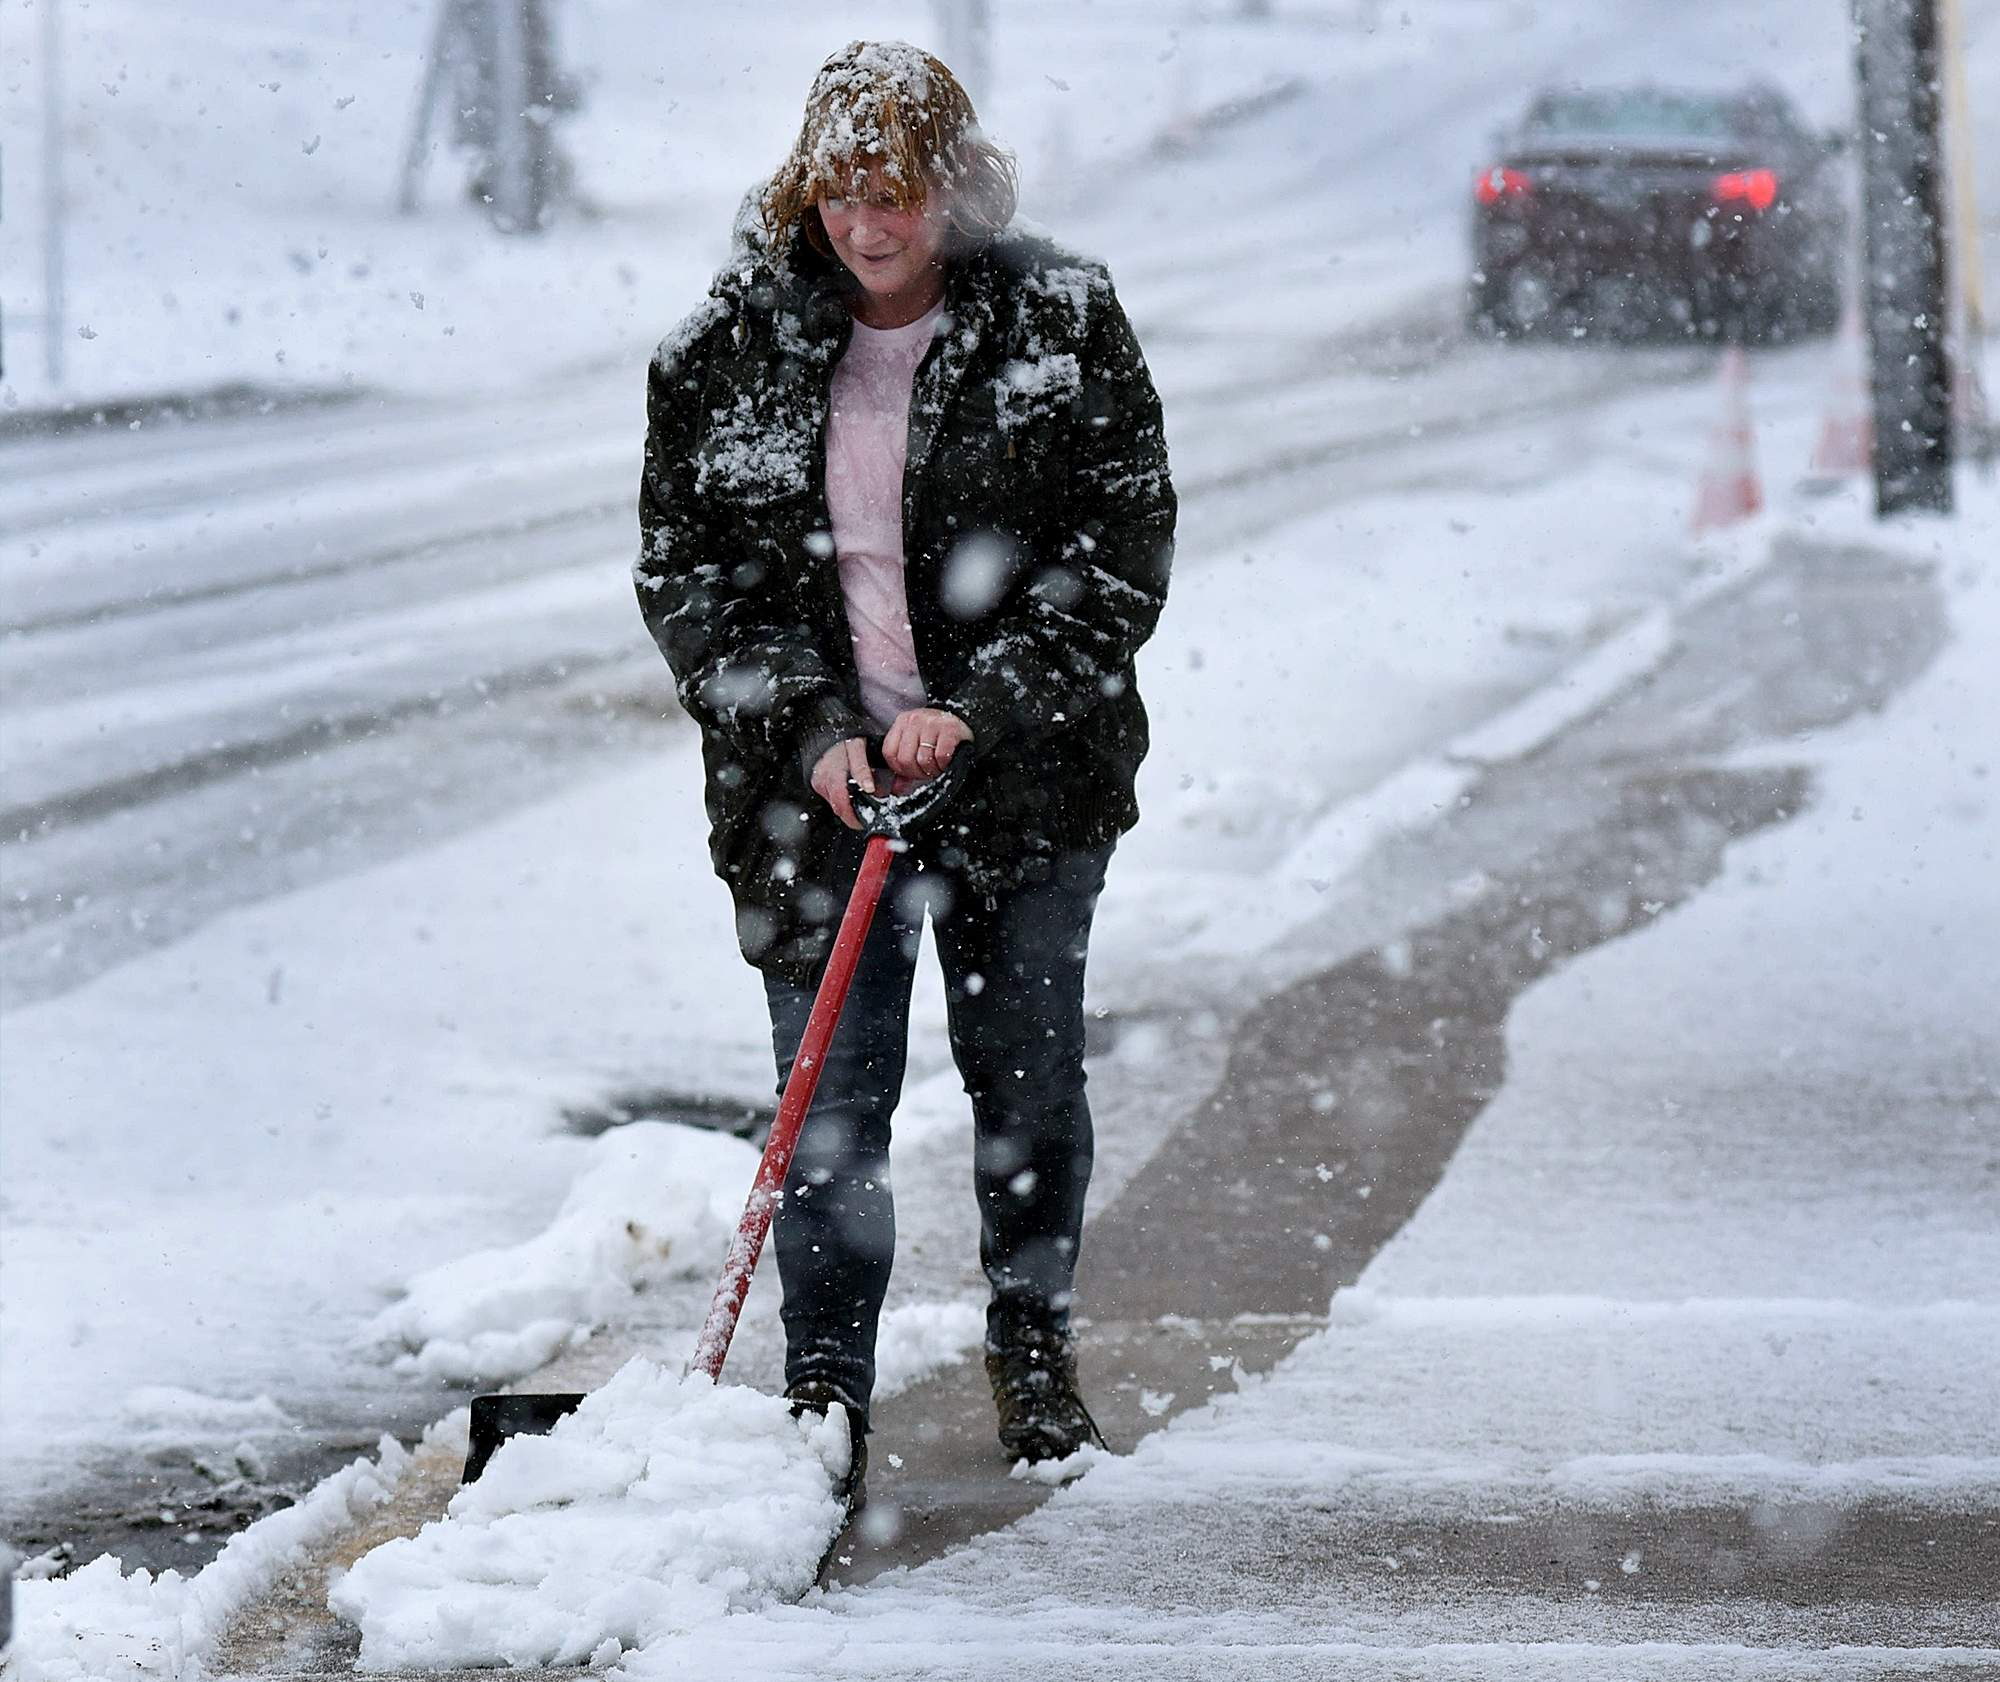 Lisa Ferketich shovels the sidewalk in front of her place of business on Reliance Rd in Souderton during the second snow storm to hit the area in the past week. [ART GENTILE / STAFF PHOTOJOURNALIST]